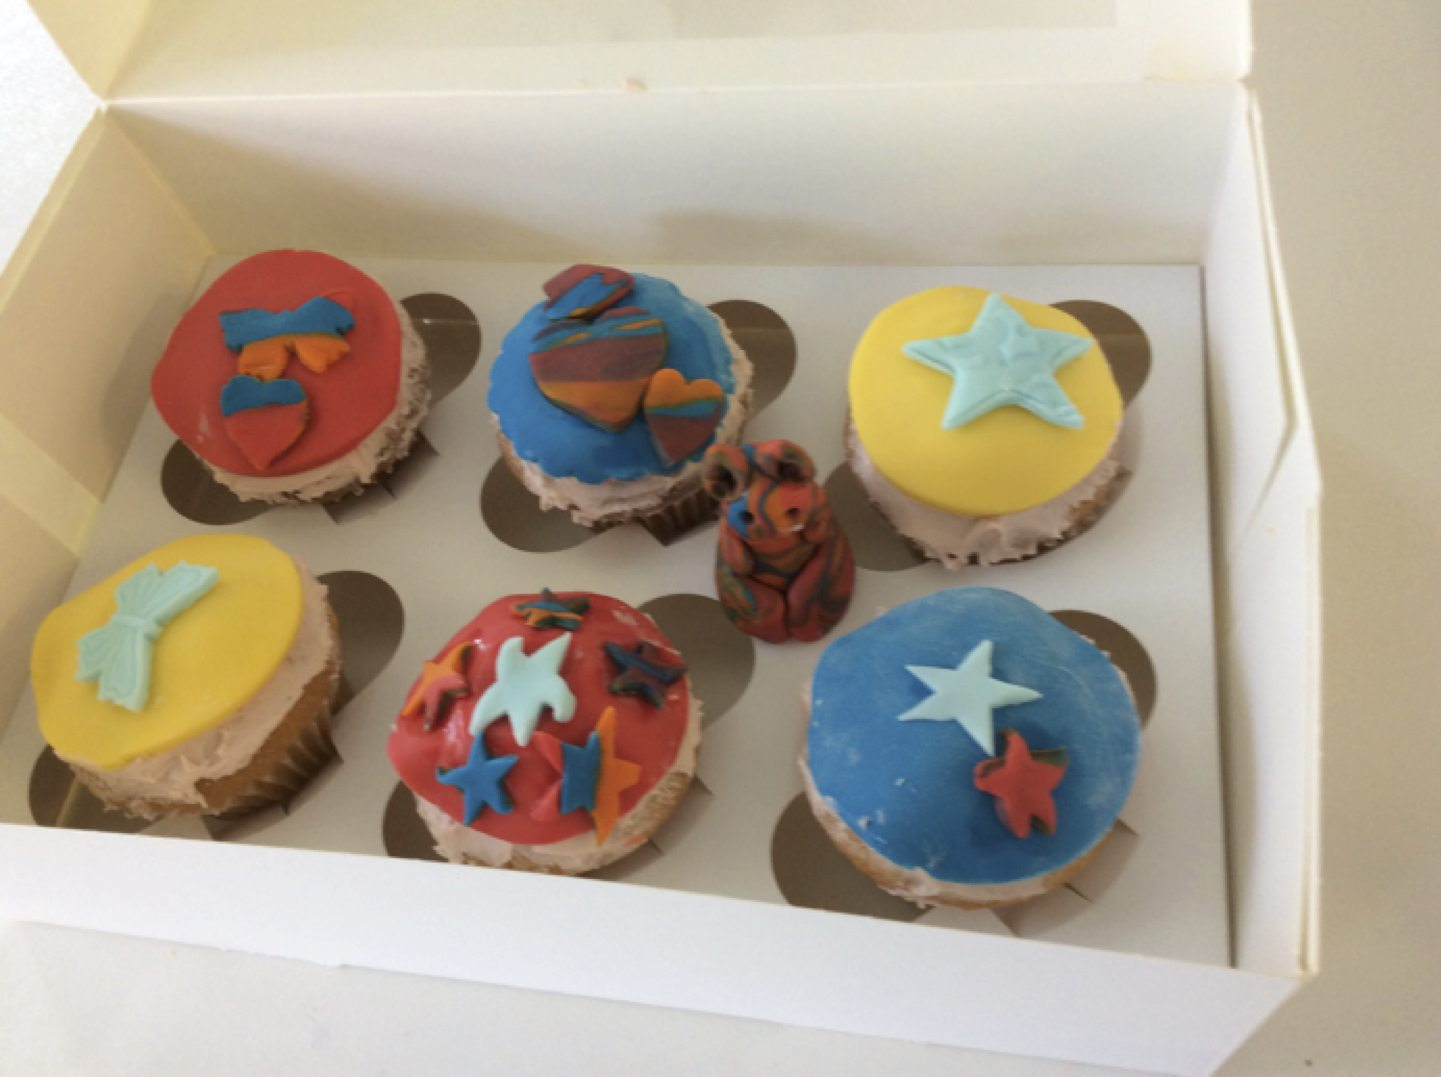 May 2017: Rang Fintan decorated cupcakes as part of the demonstration with Victoria from BakeYouSweet